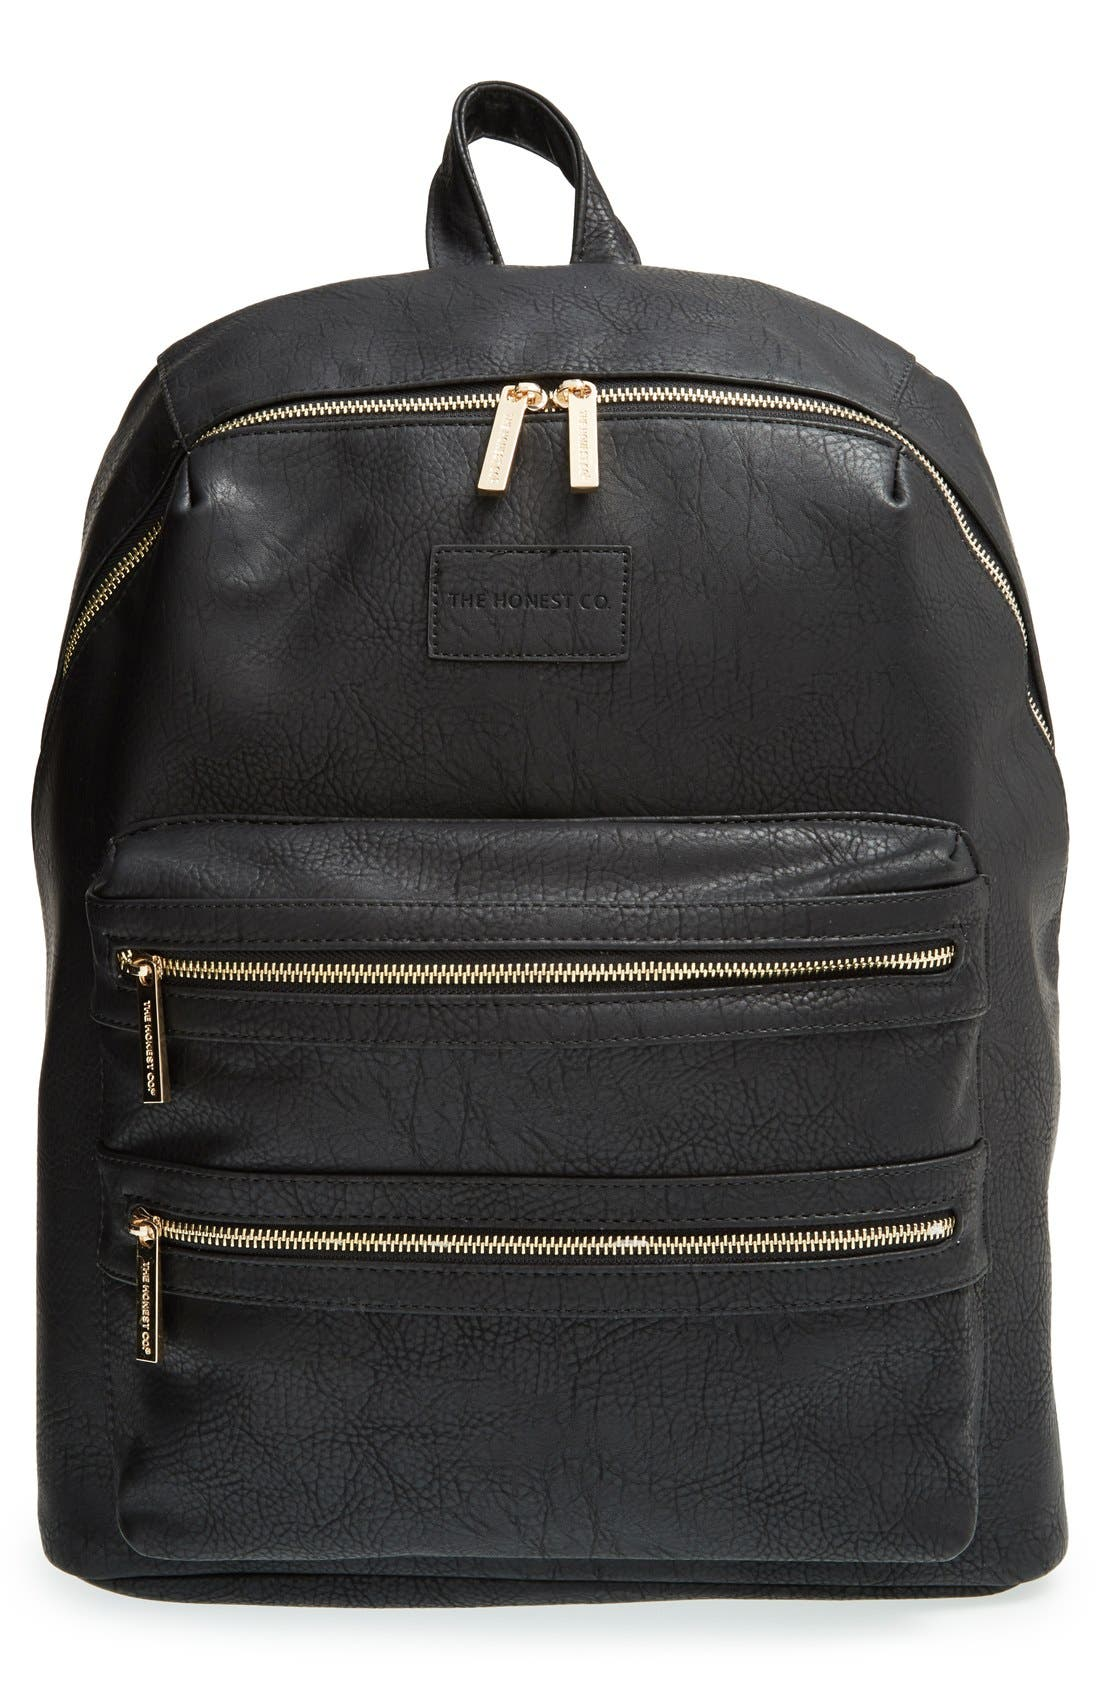 Alternate Image 1 Selected - The Honest Company 'City' Faux Leather Diaper Backpack